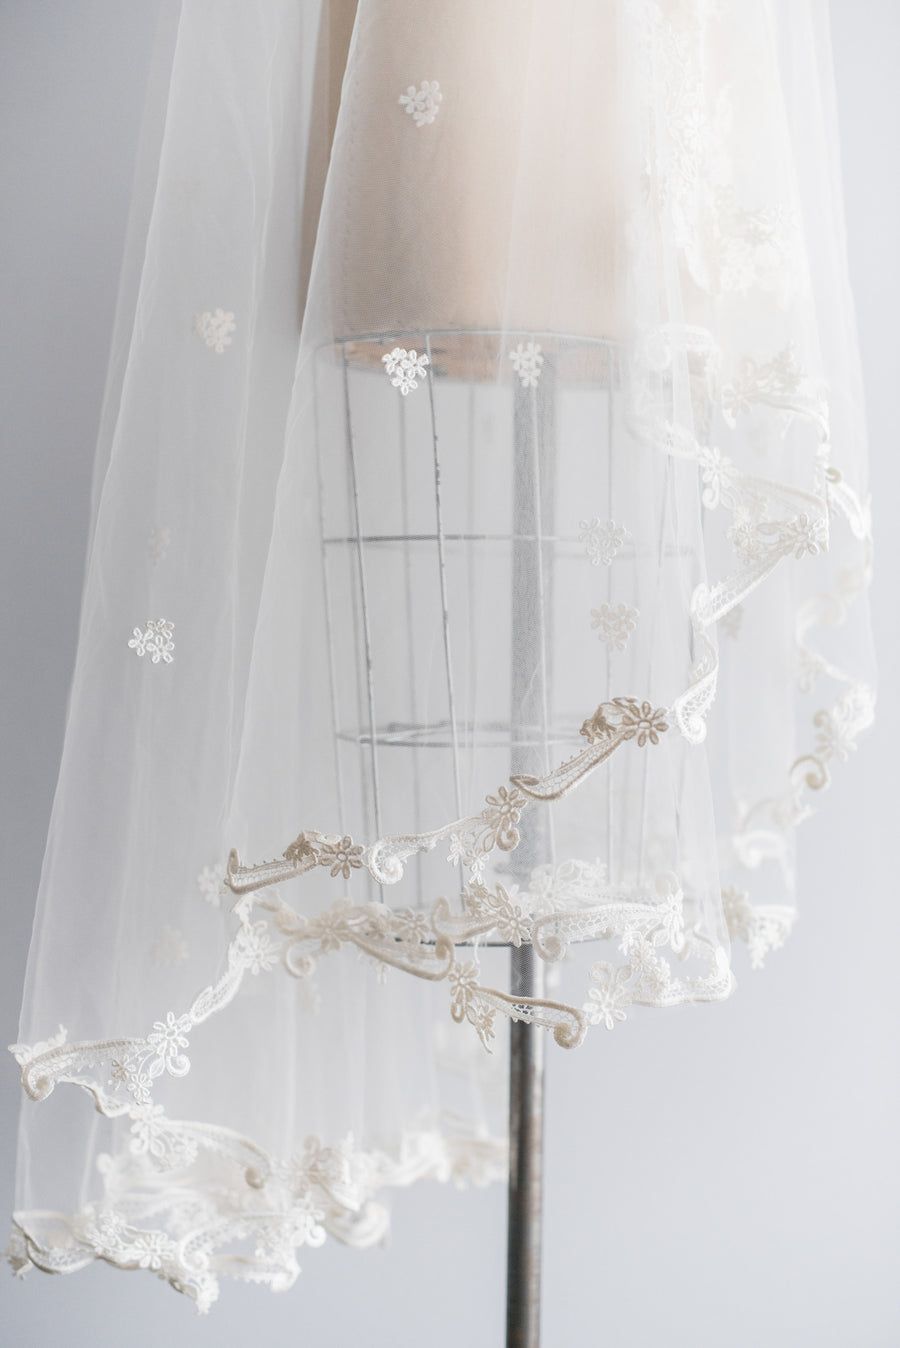 1970's Tulle Lace Applique Veil - Waltz Length